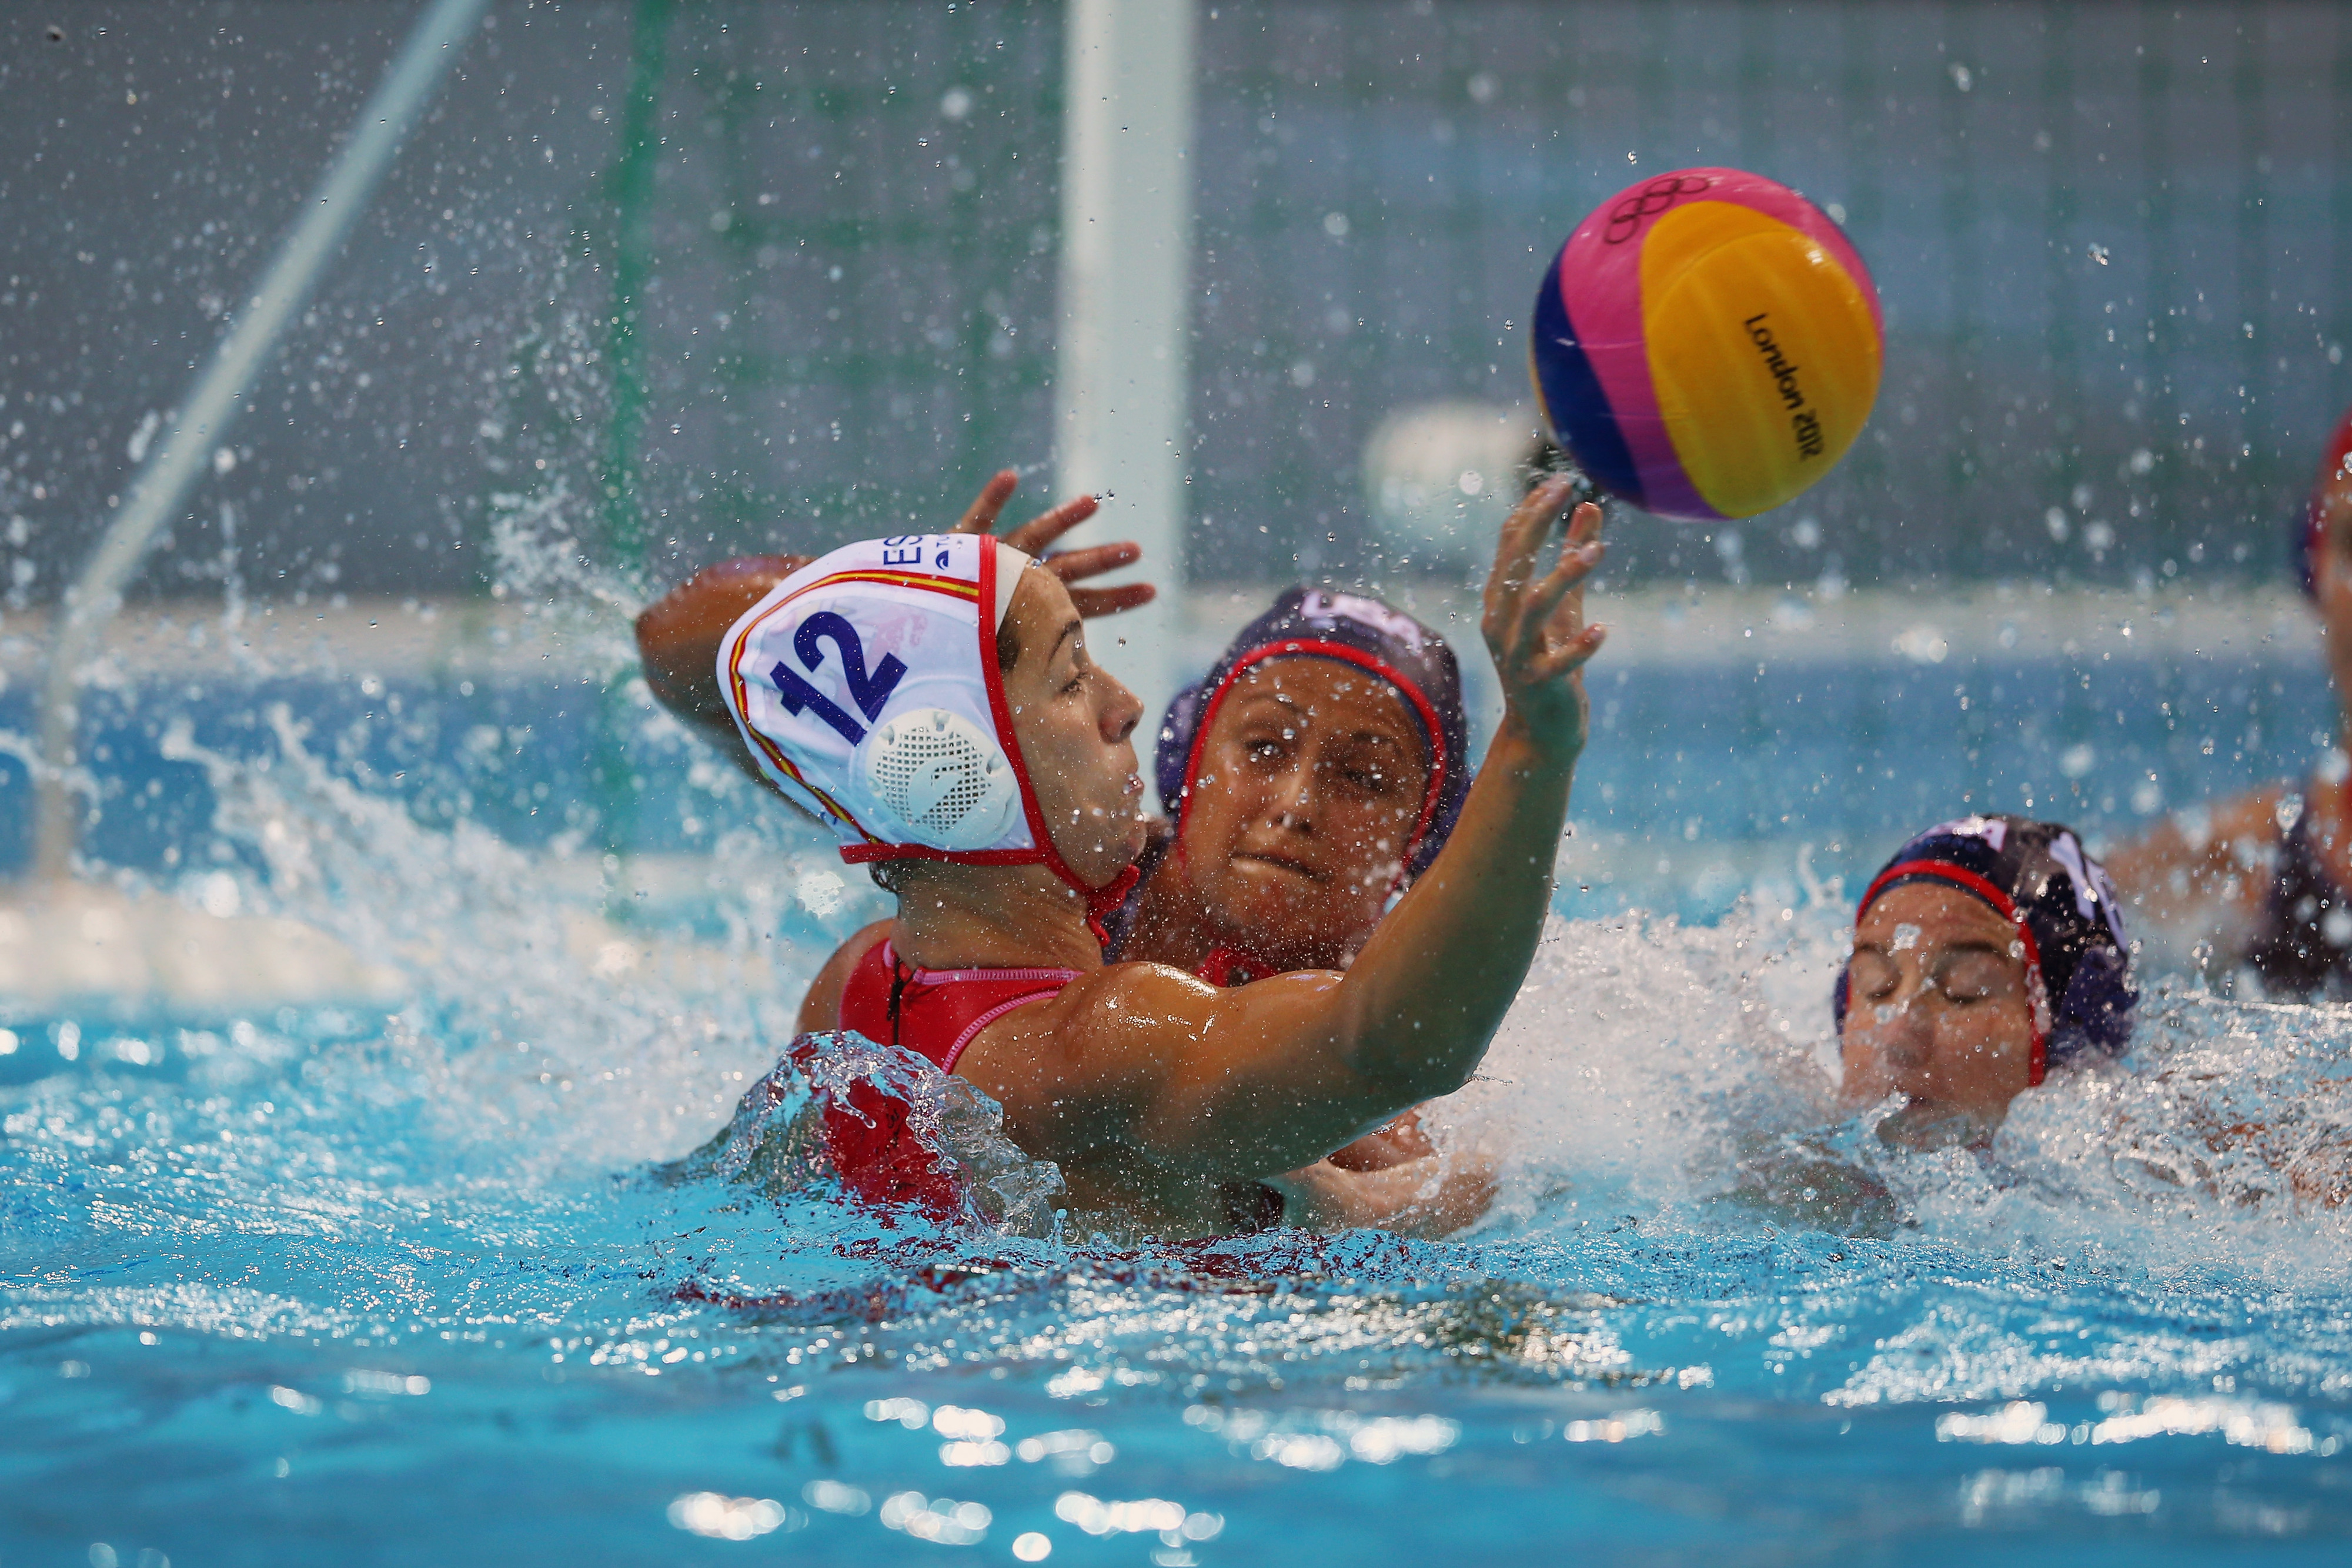 LONDON, ENGLAND - AUGUST 01:  Brenda Villa of the USA blocks Laura Lopez Ventos of Spain a on Day 5 of the London 2012 Olympics at Water Polo Arena on August 1, 2012 in London, England.  (Photo by Jeff J Mitchell/Getty Images)